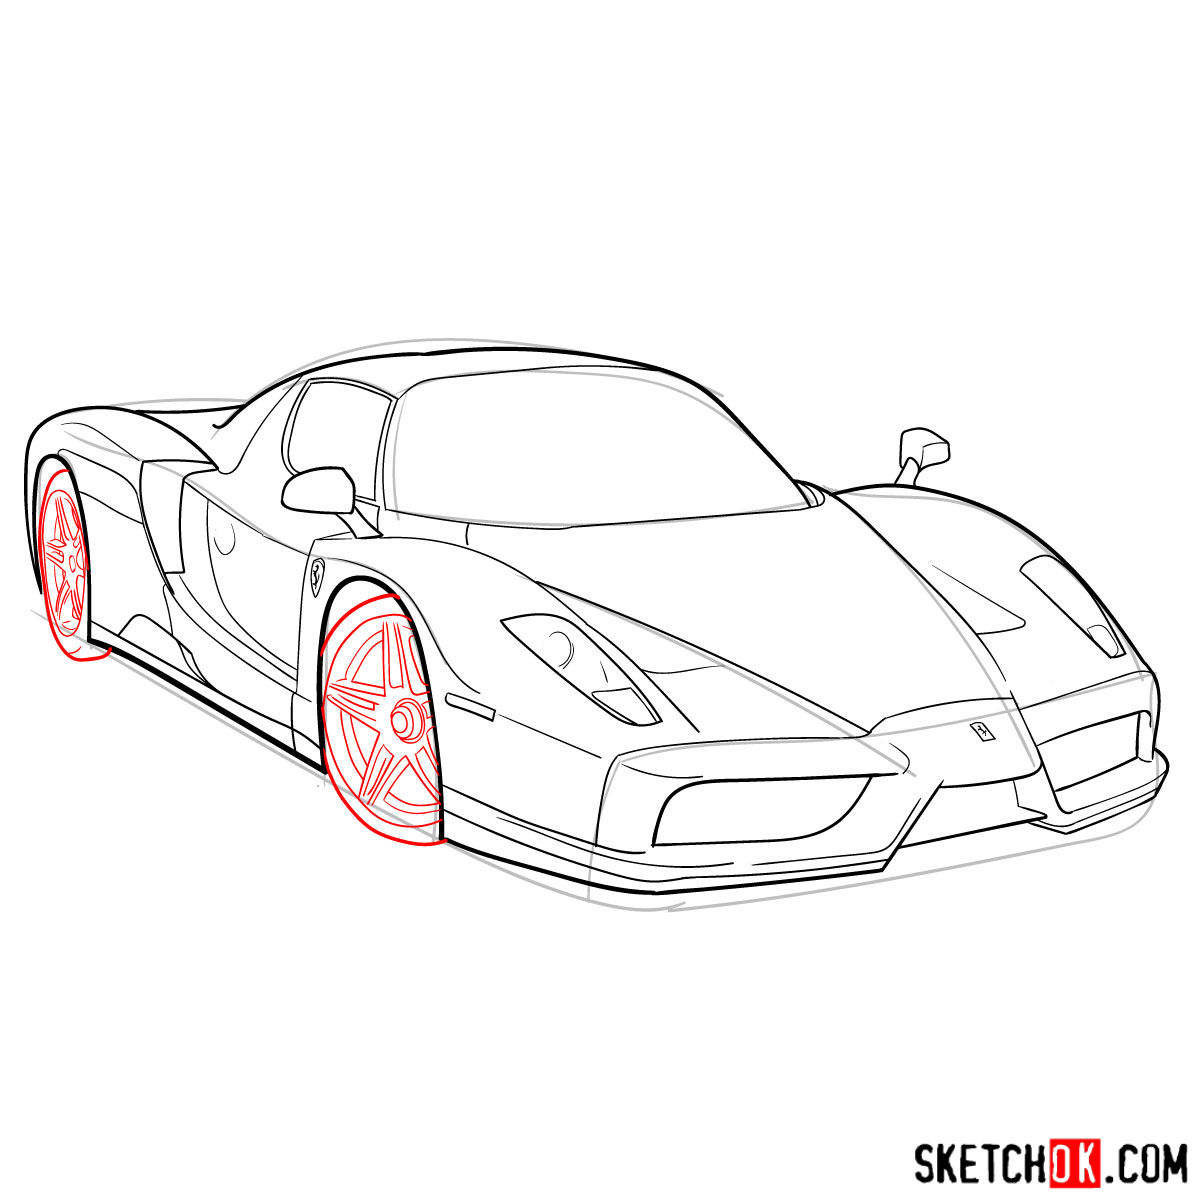 How to draw Ferrari Enzo legendary supercar - step 09